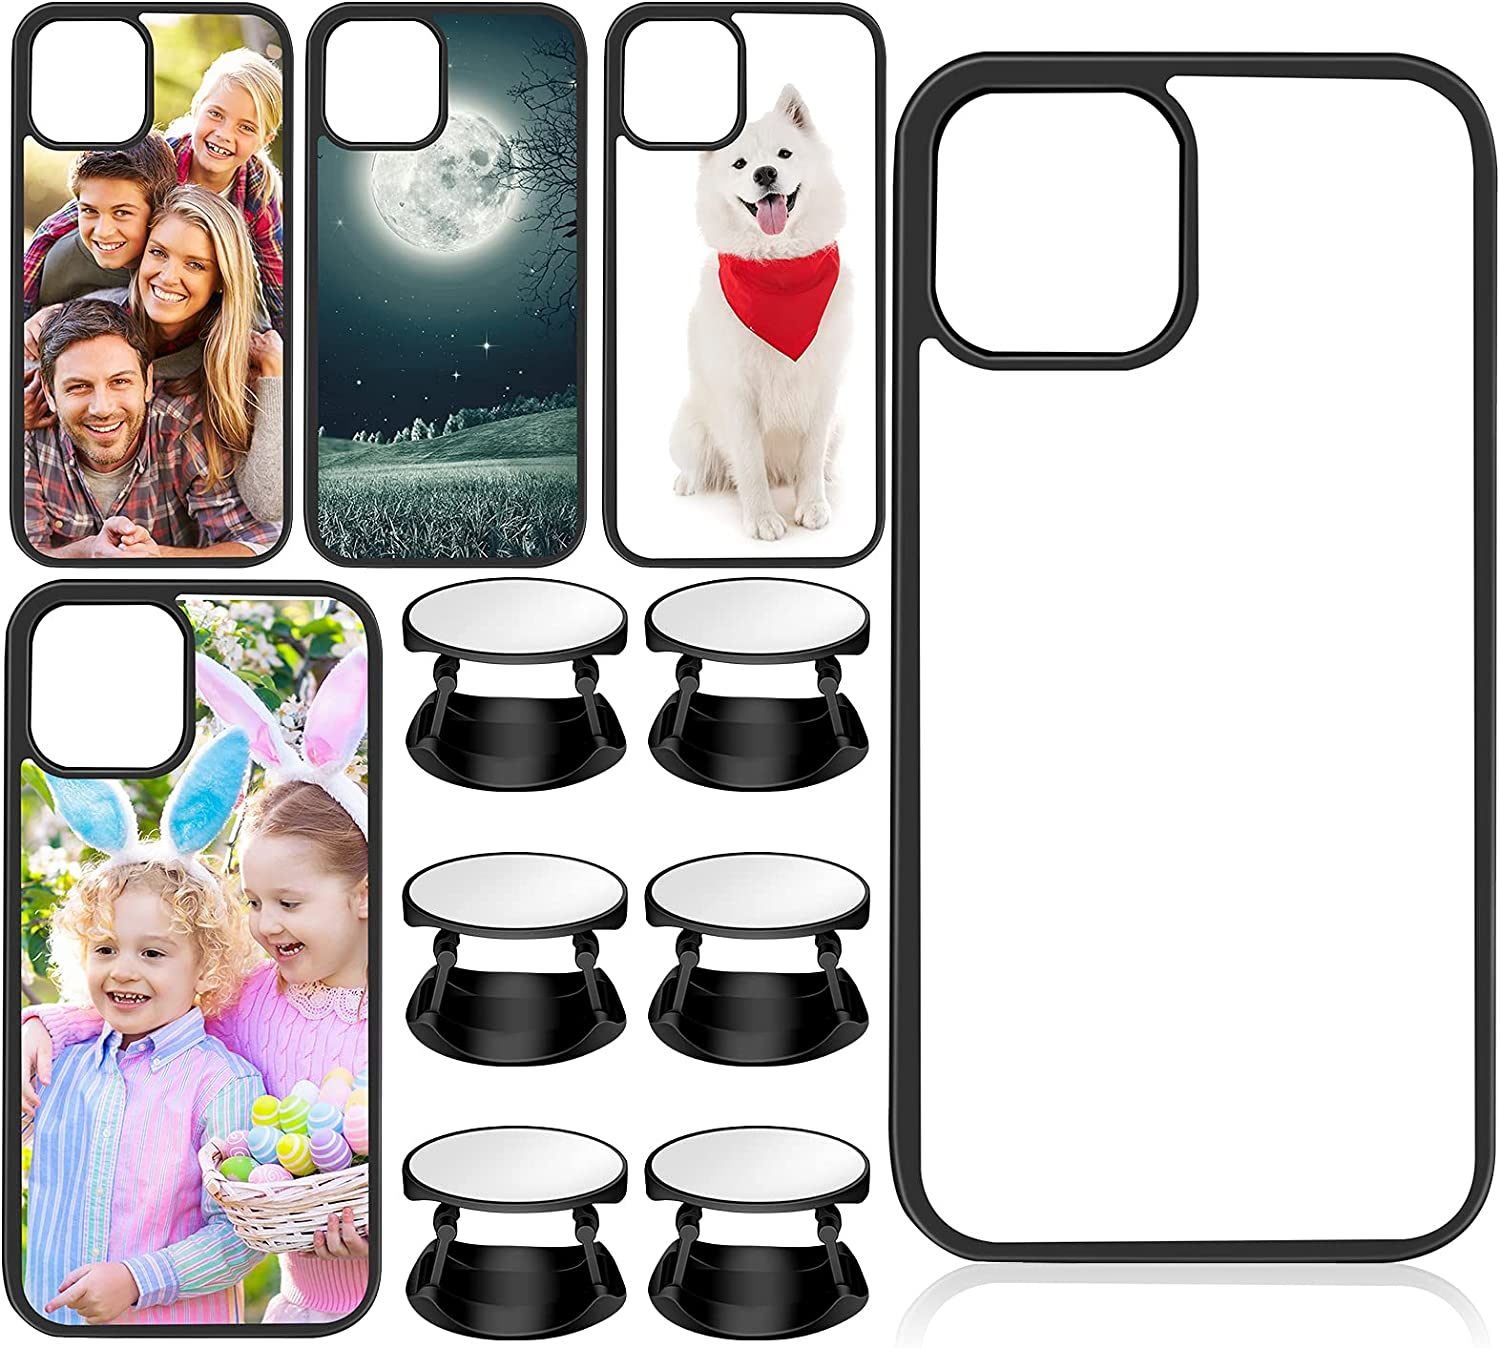 10 Sublimation Sets Include 5 Pieces Sublimation 2D Phone Case Covers Soft Rubber Anti-slip Compatible with iPhone 11, Alone with 5 Set Blank Sublimation Phone Holders for DIY Phone Case Grips